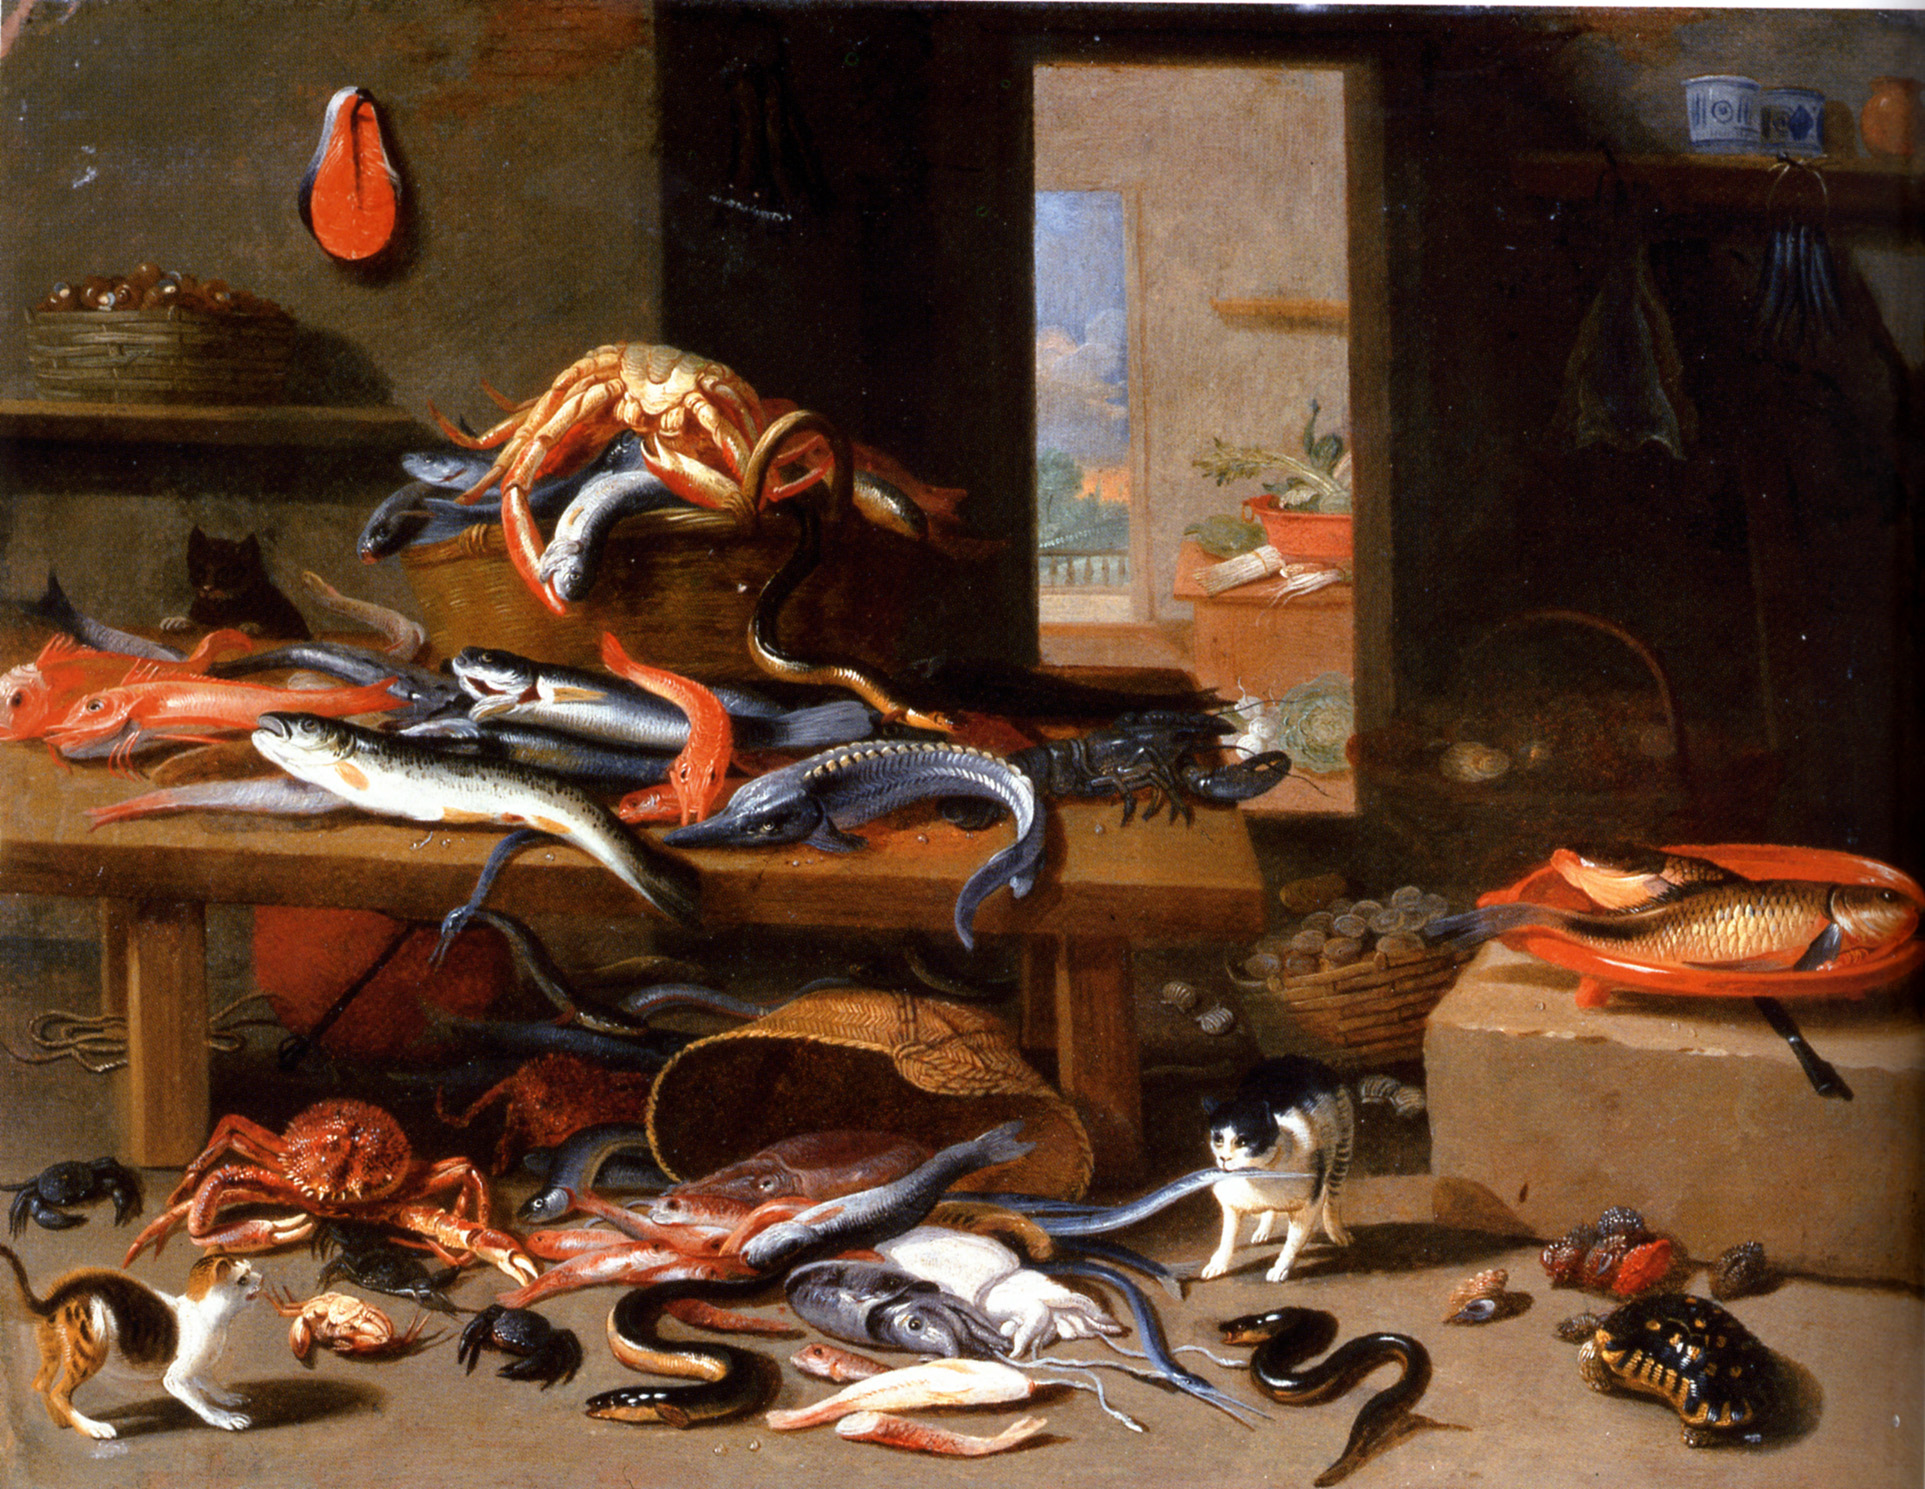 File:Jan van Kessel still life.jpg - Wikimedia Commons